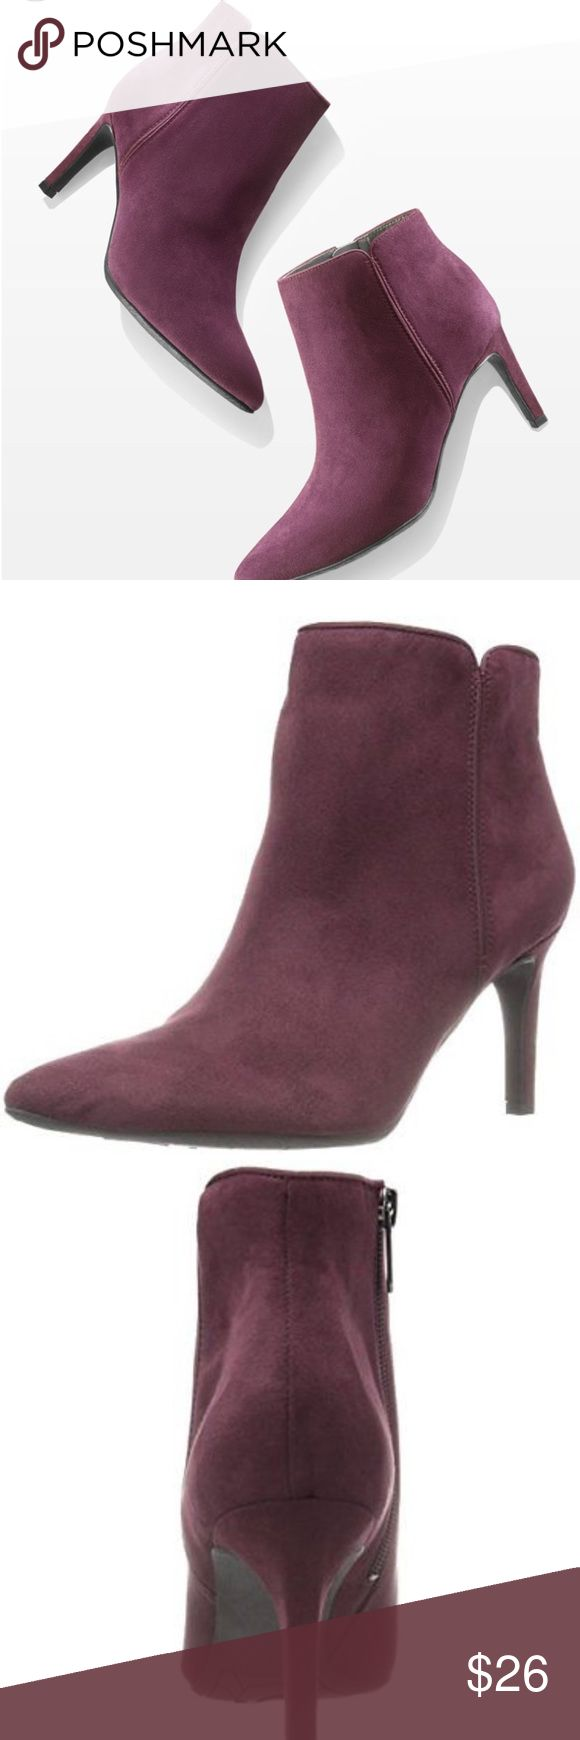 """CIRCUS BY SAM EDELMAN Circus By Sam Edelman Avalon Women Pointed Toe Synthetic Purple Ankle Boot Measurement: Shaft Measures 4"""", Circumference Measures 10"""" And 3.5"""" Heel * heels scratched (shown in the pictures) Circus by Sam Edelman Shoes Ankle Boots & Booties"""